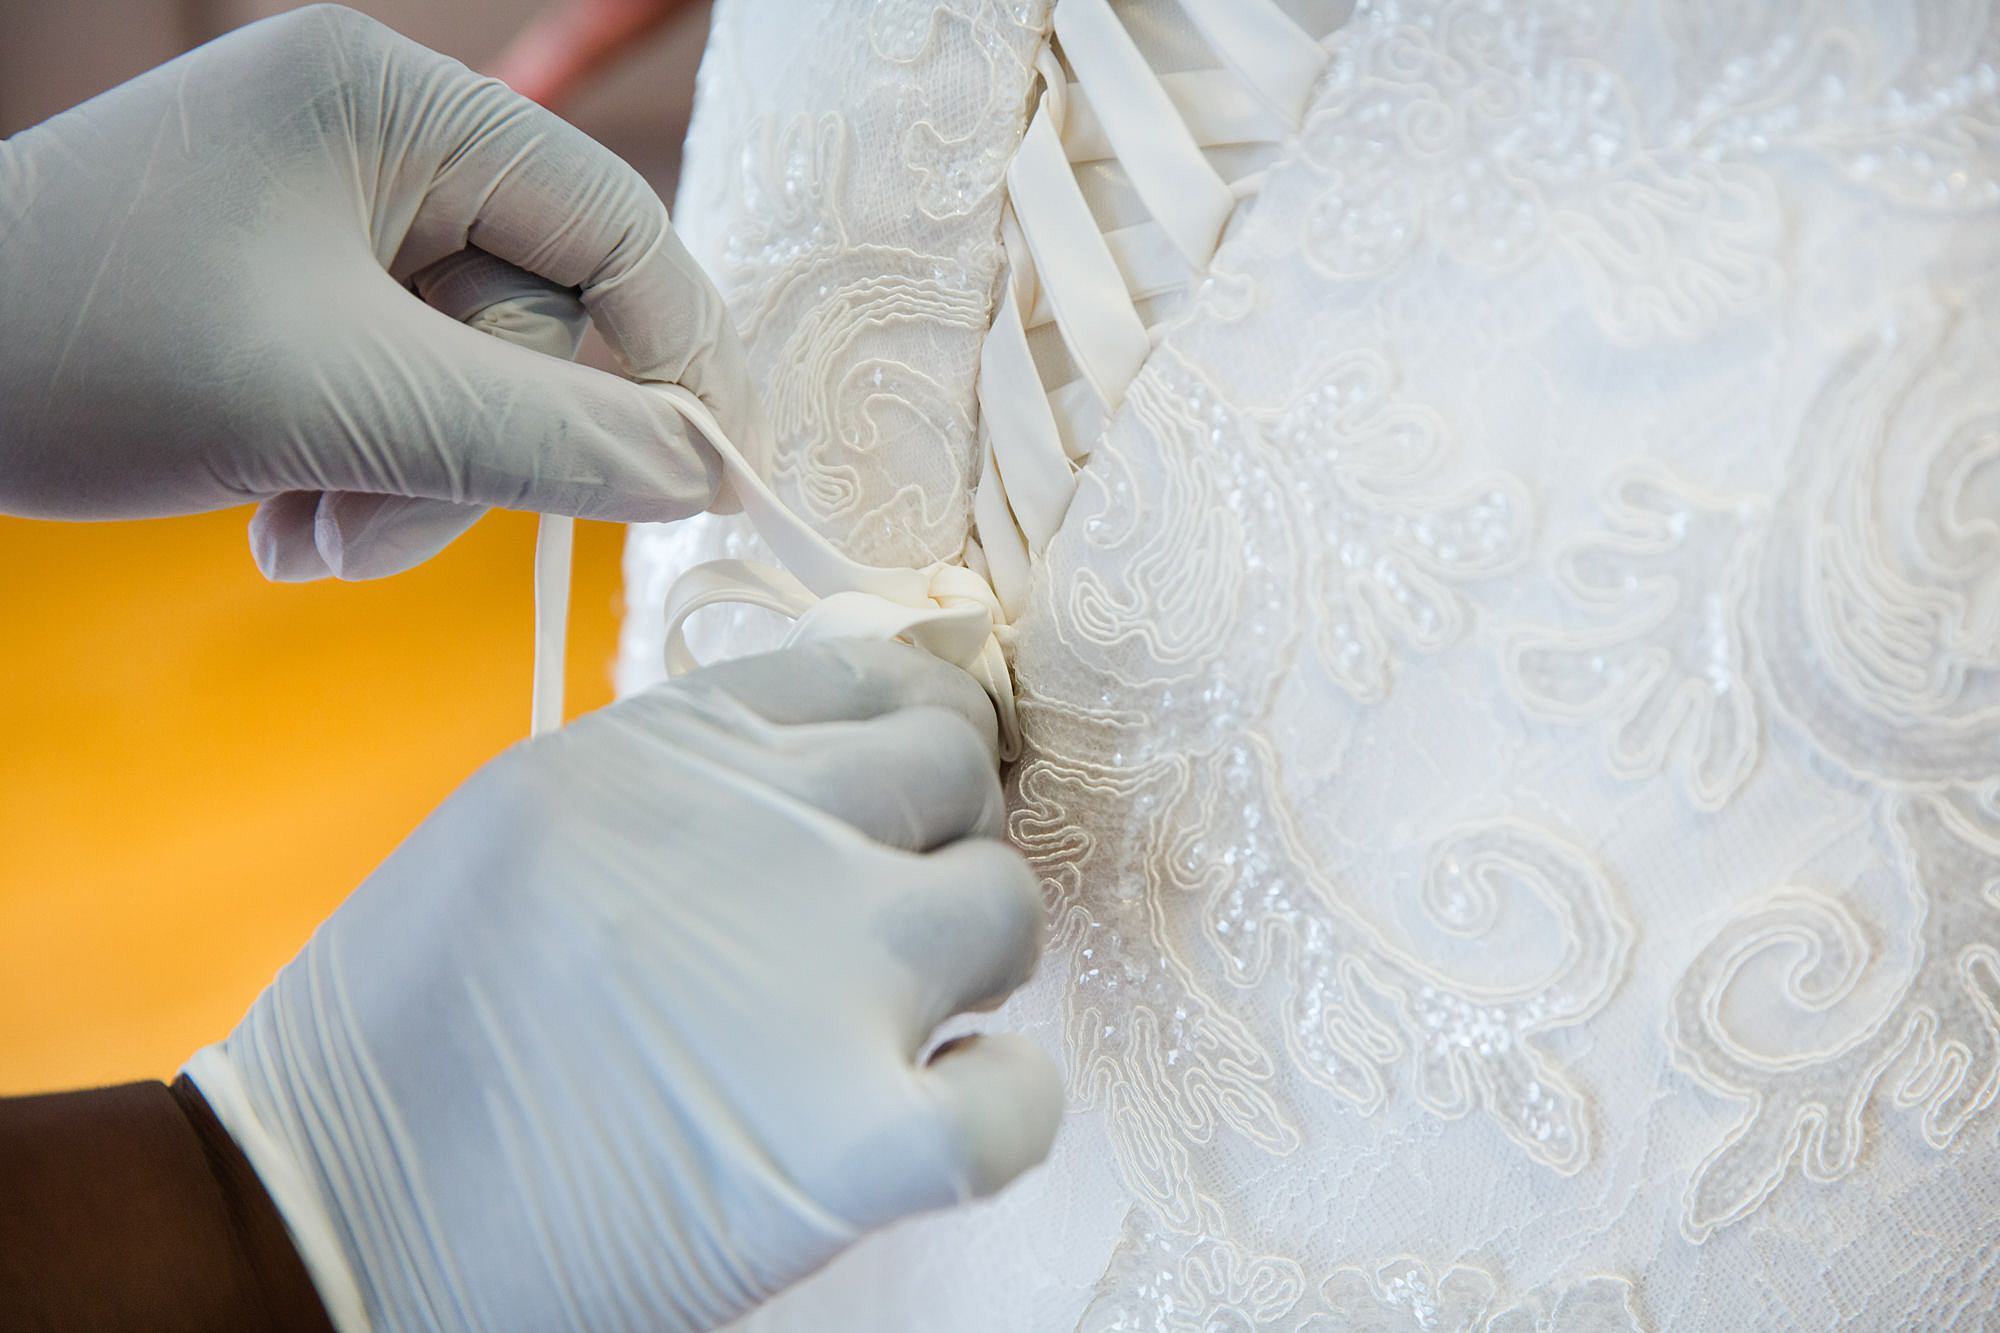 Bank of England Sports Centre wedding close up detail of bride's dress being tied